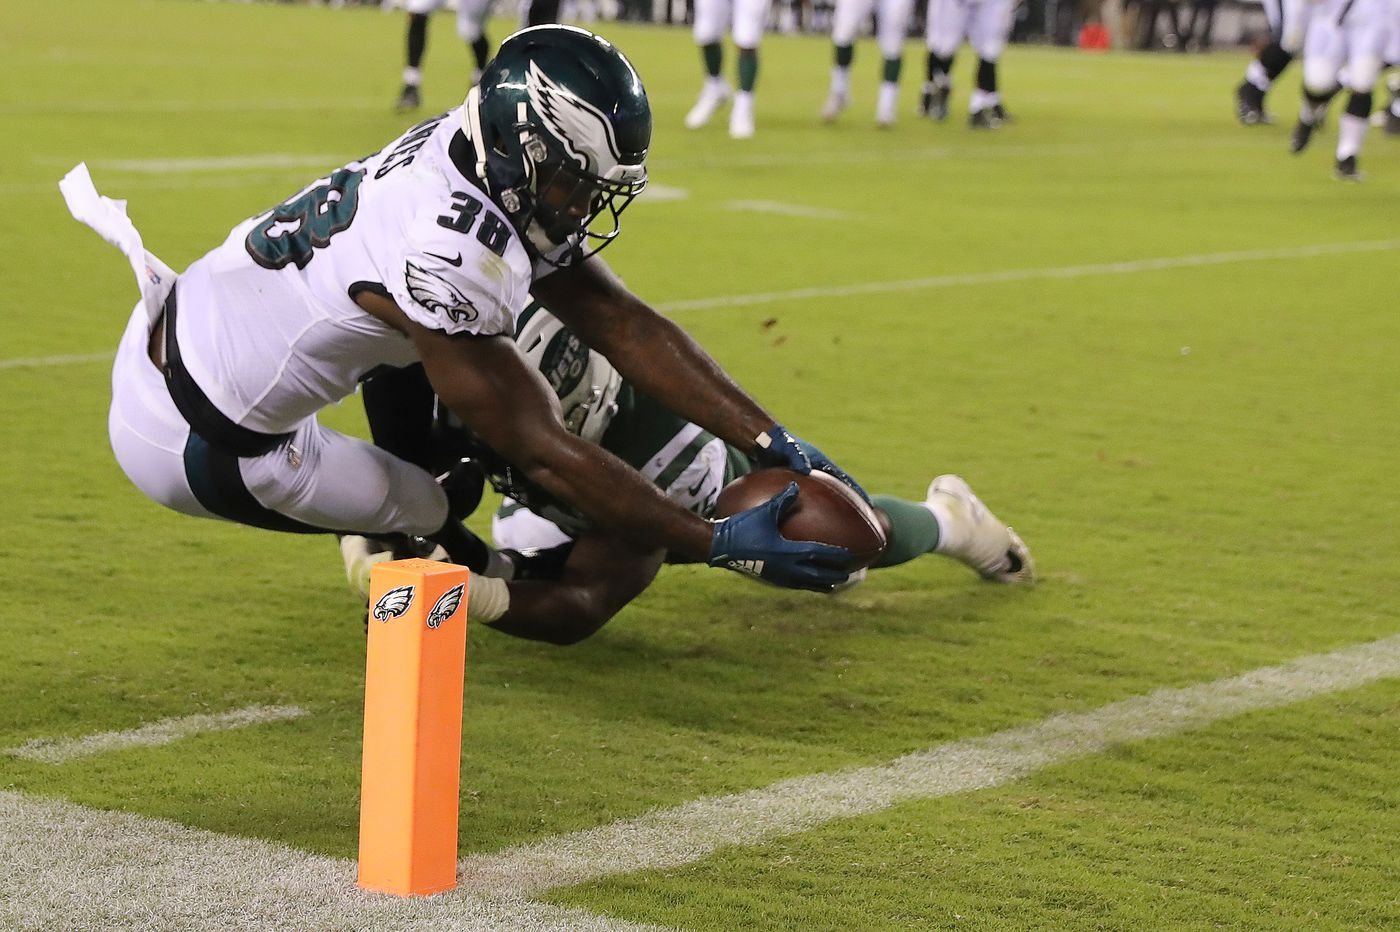 Eagles 10, Jets 9: Joe Callahan, Matt Jones connect on last-minute touchdown to end preseason with victory